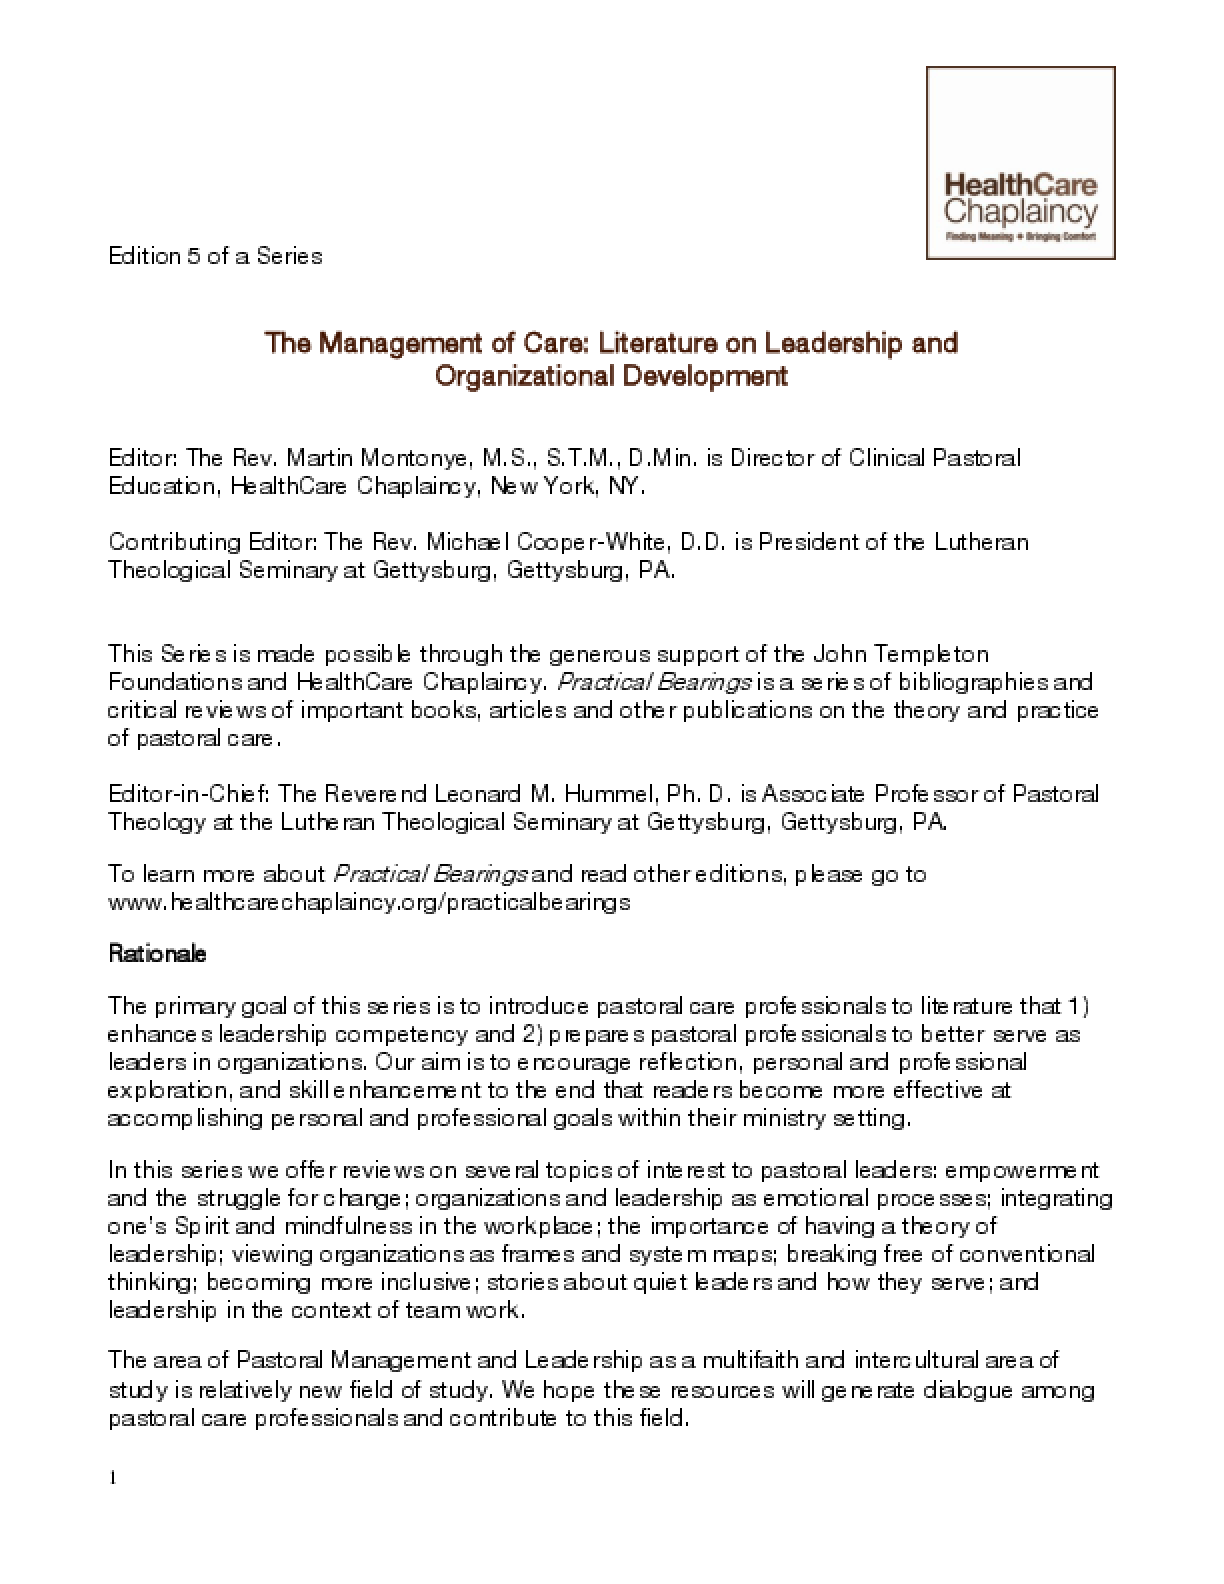 The Management of Care: Literature on Leadership and Organizational Development